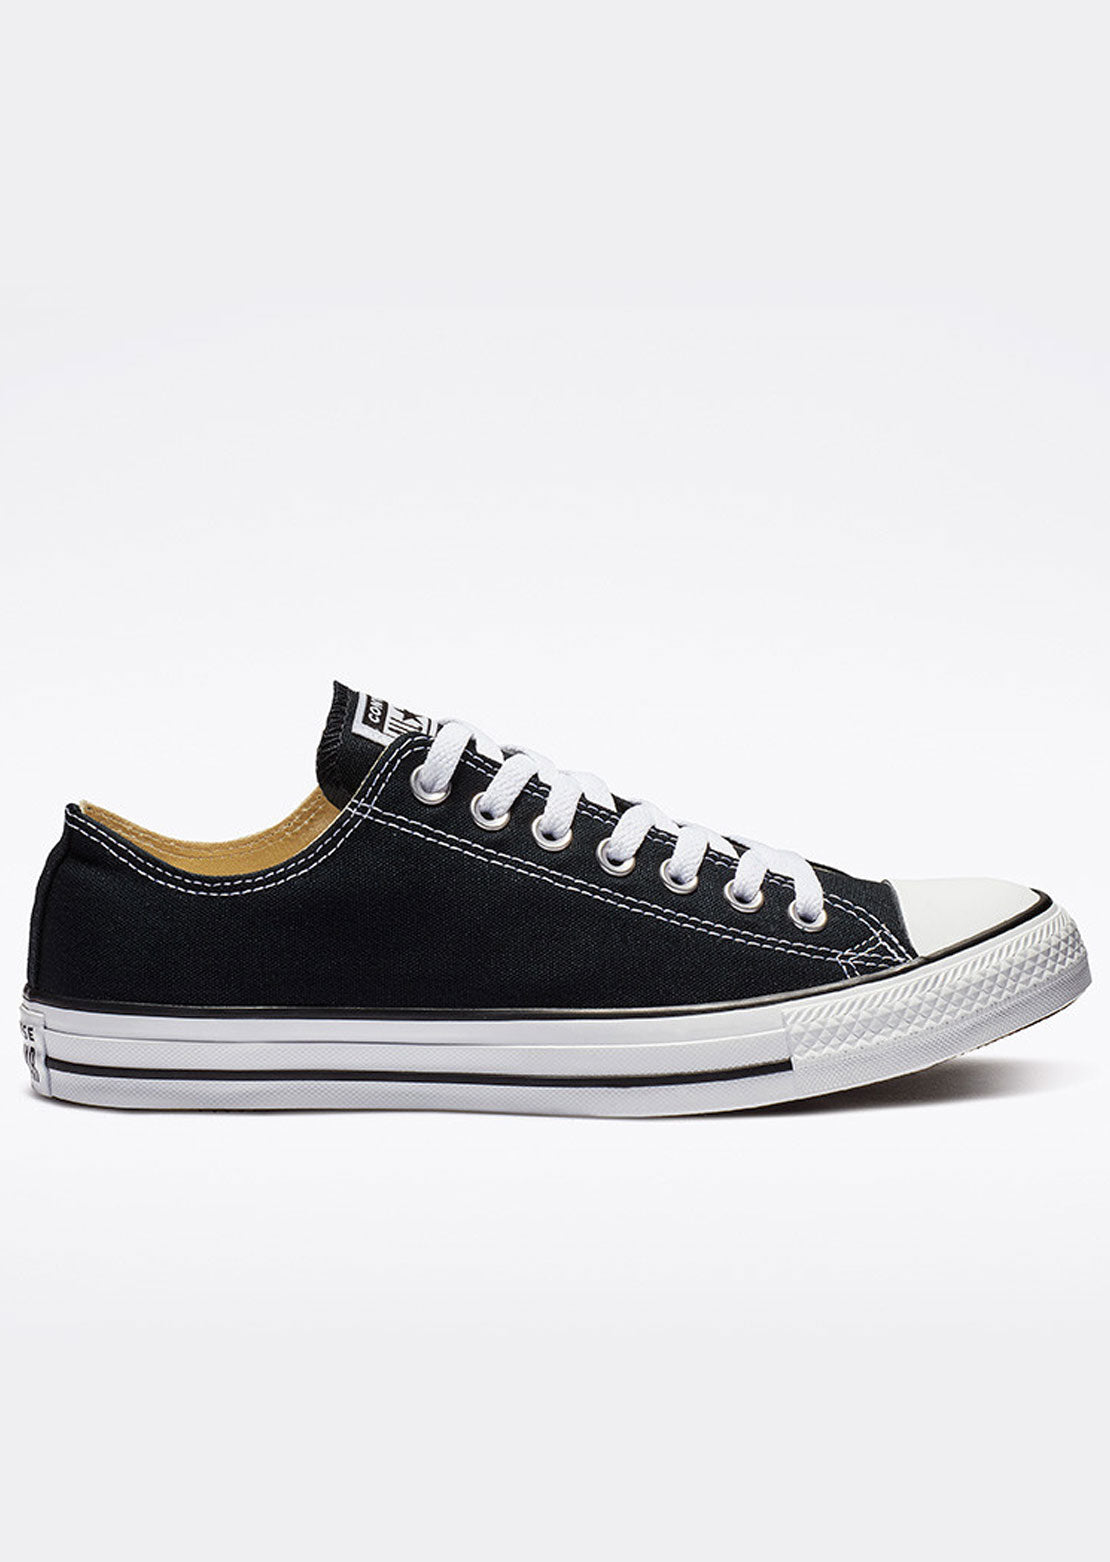 Converse Unisex Chuck Taylor All Star Low Top Shoes Black